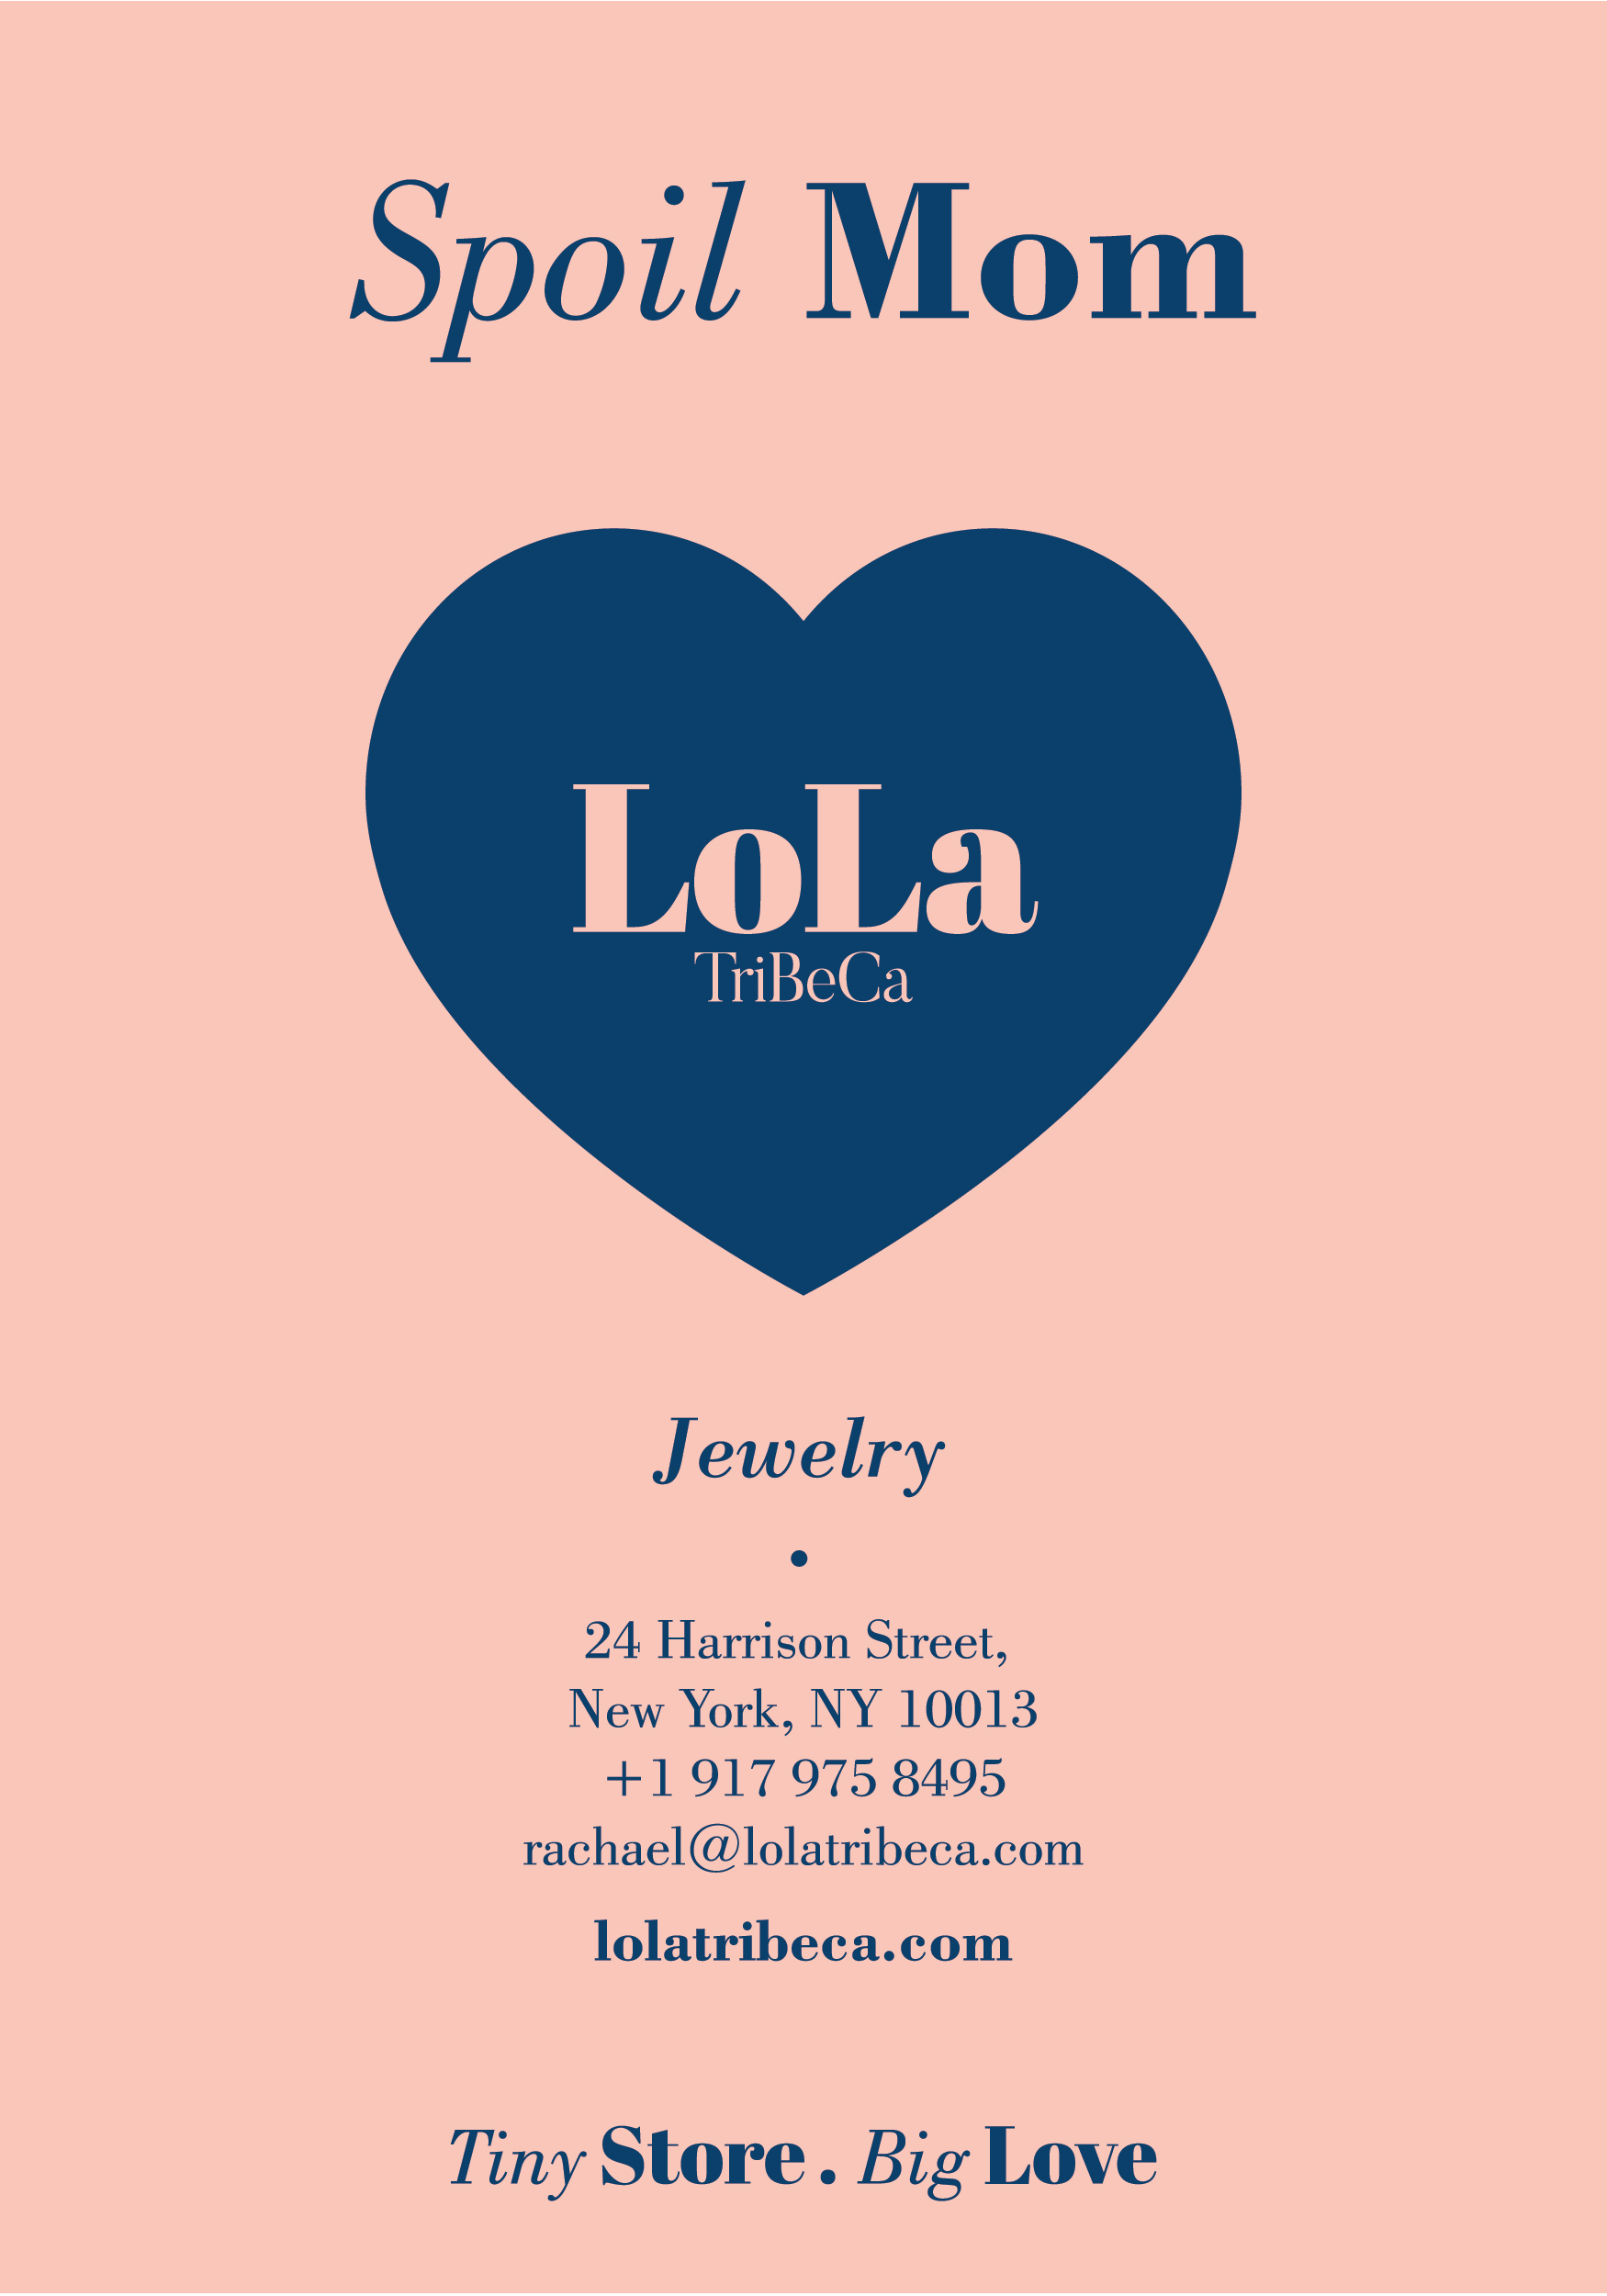 Visit  www.lolatribeca.com  or our 24 Harrison Street, Tribeca store location to personally experience the beauty of our extensive selection of jewelry and designs that are guaranteed to spoil Mom!